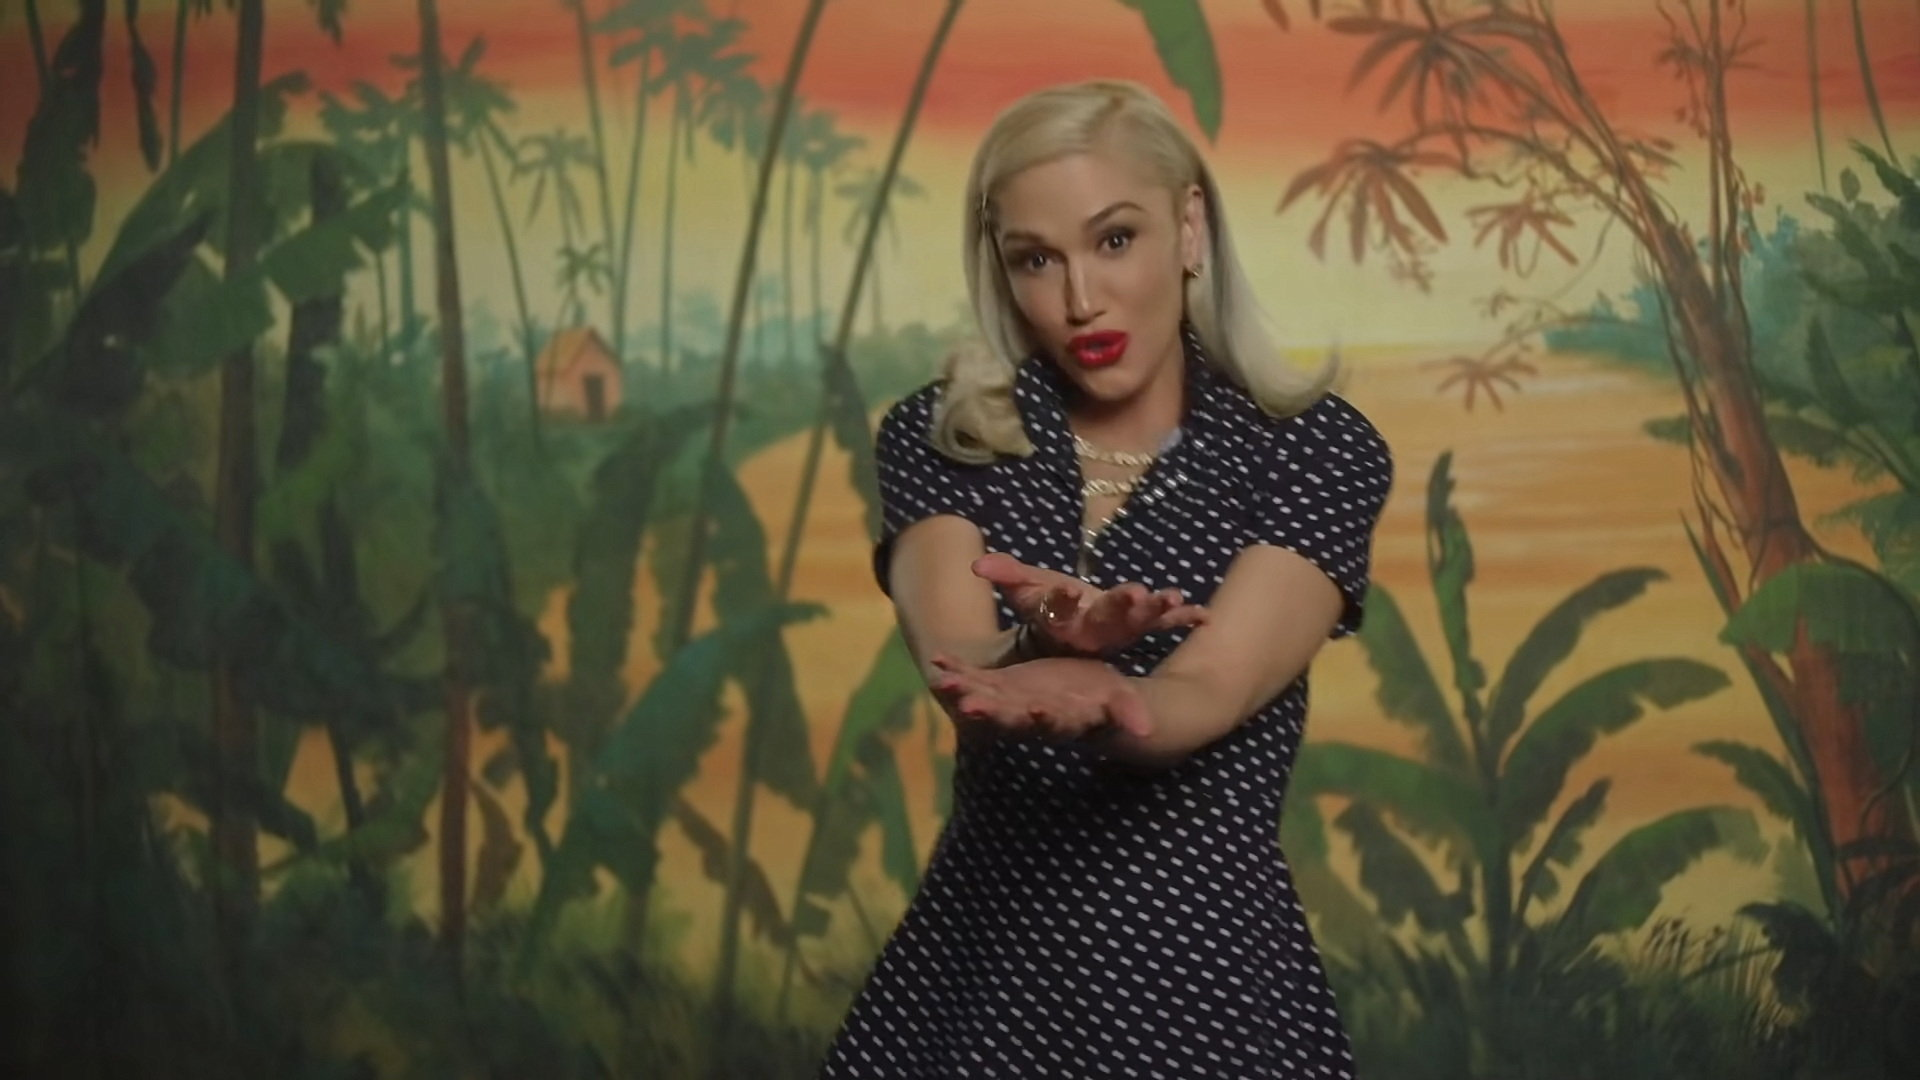 Gwen Stefani - Let Me Reintroduce Myself (Official Video) 2-13 Screenshot